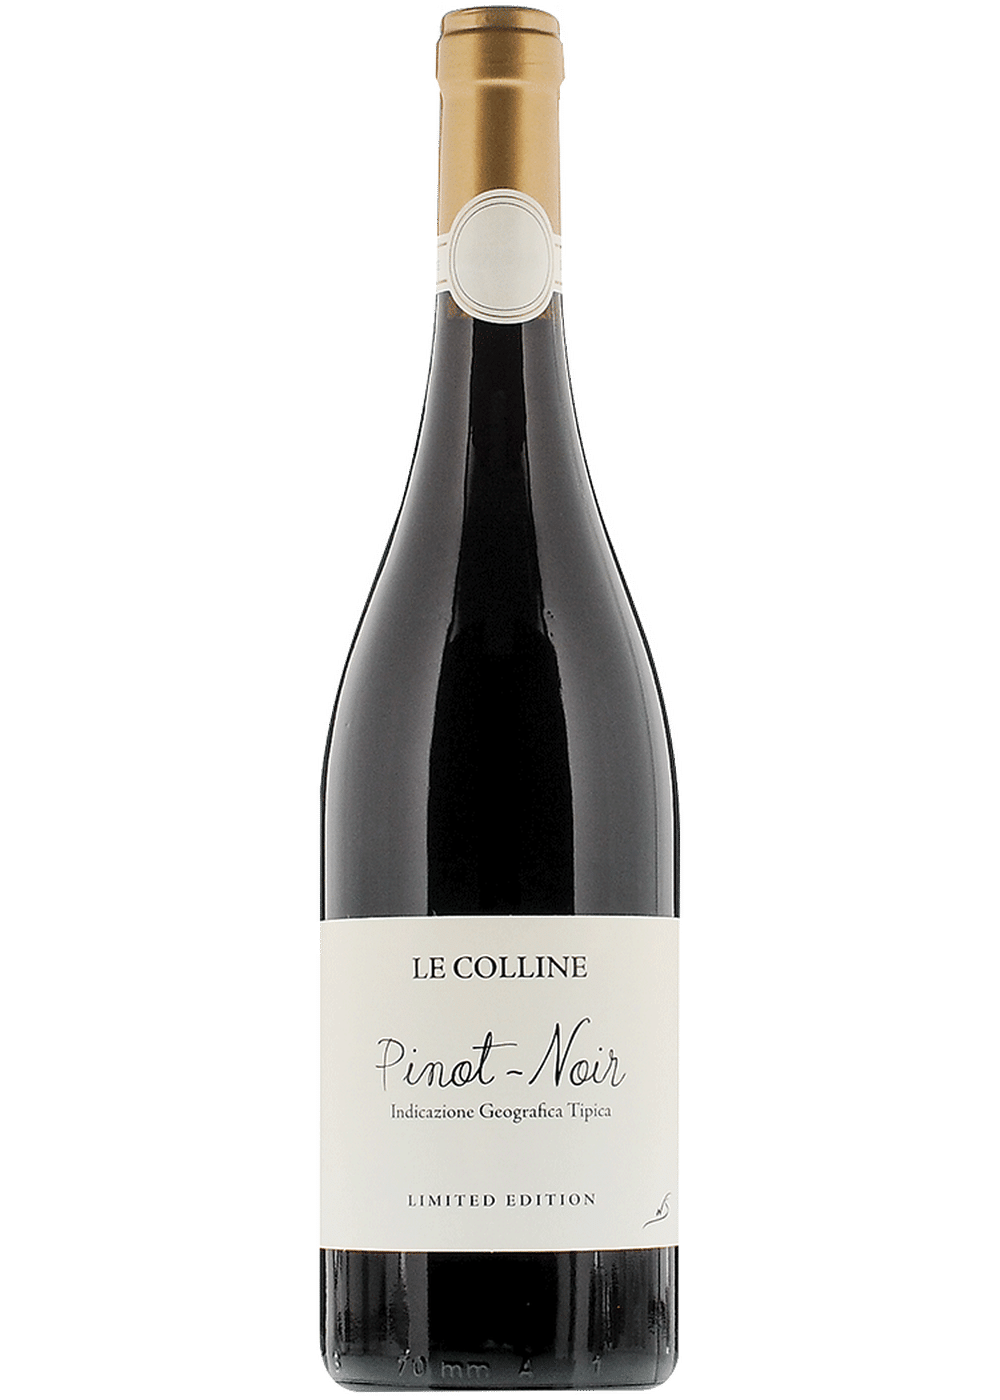 Le Colline Pinot Noir Pinot Noir Red Wine Pinot